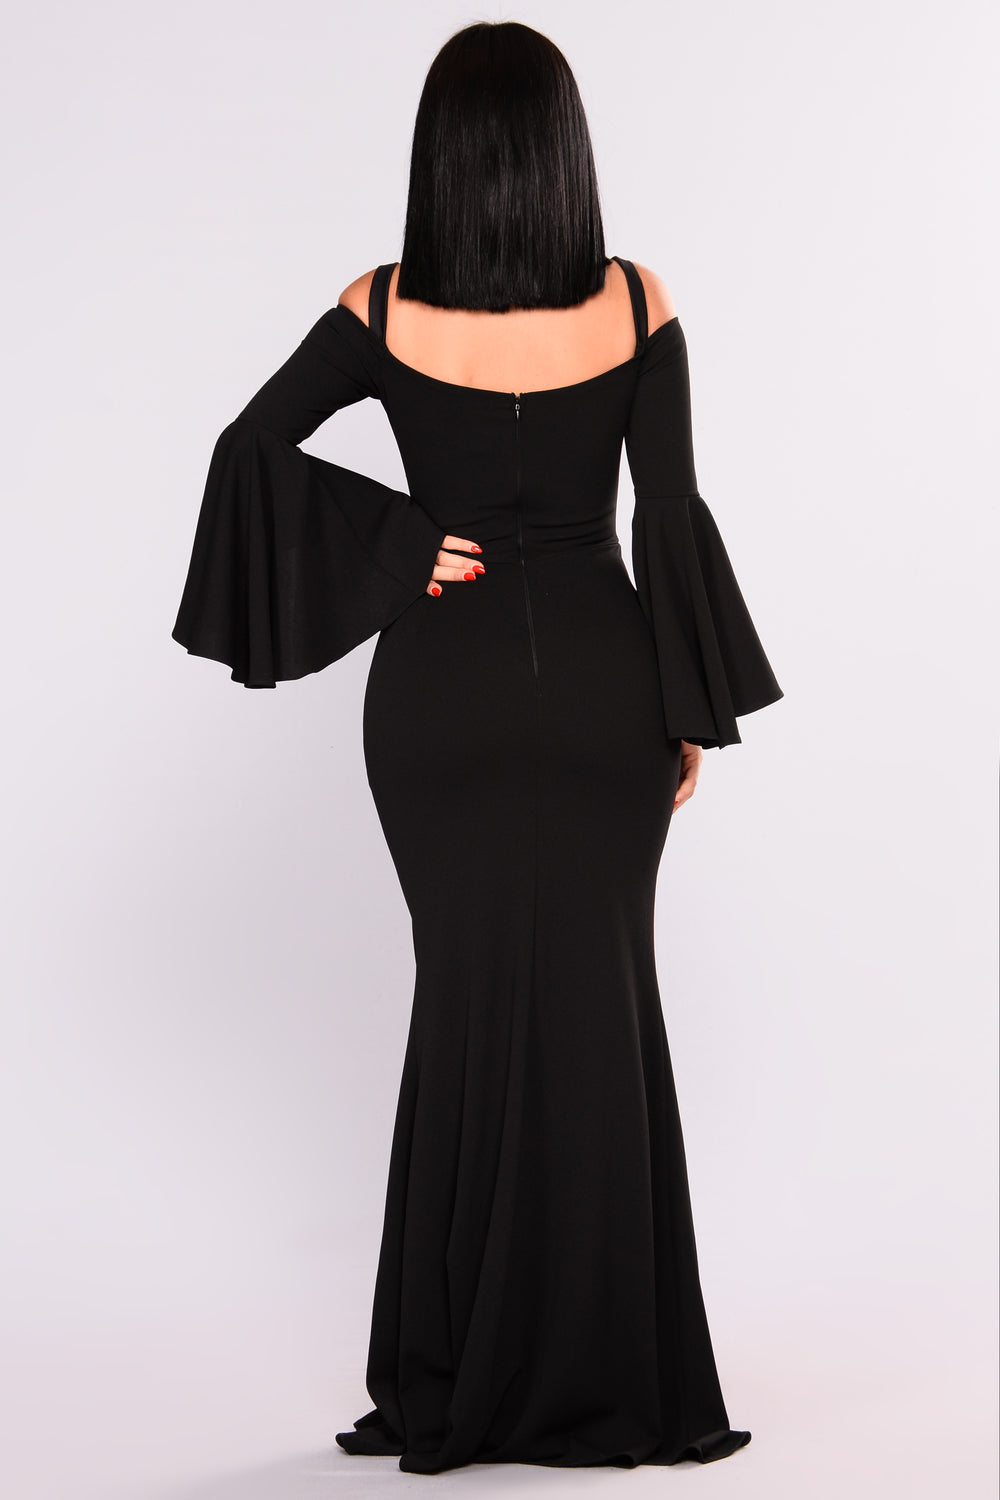 Fascination Off Shoulder Dress - Black